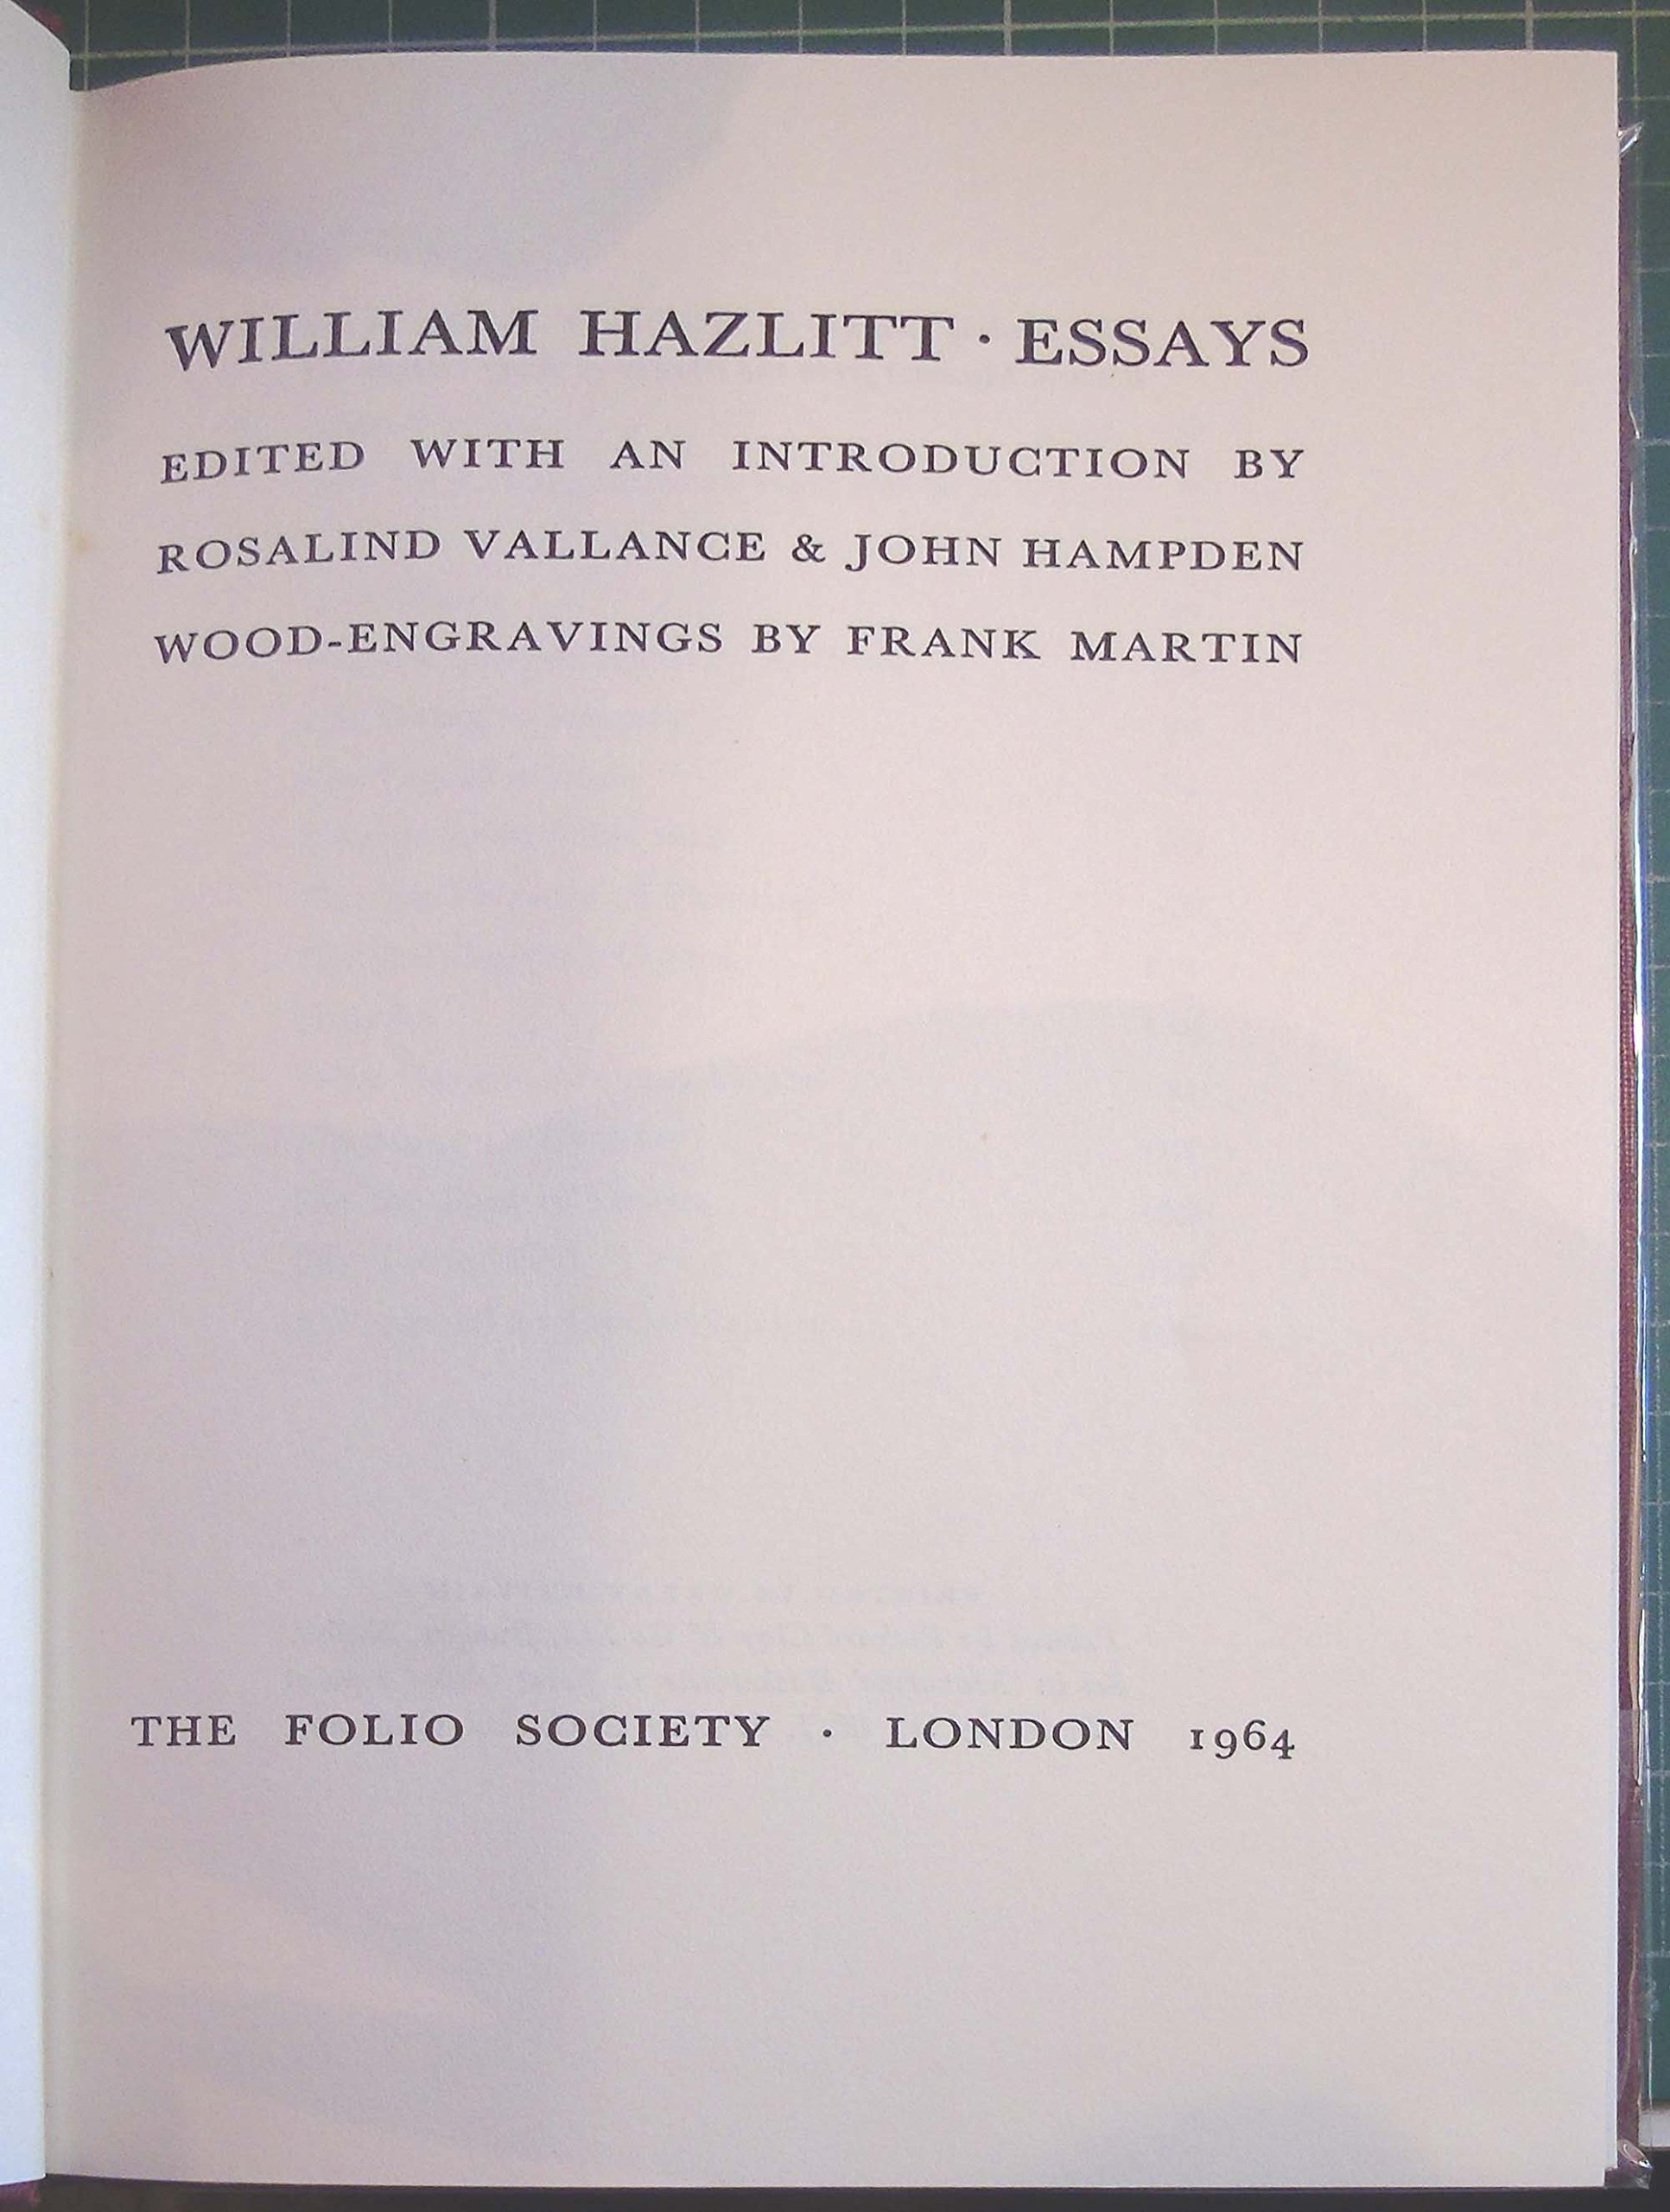 william hazlitt essays amazon co uk william edited by rosalind  william hazlitt essays amazon co uk william edited by rosalind vallance and john hampden hazlitt frank martin books